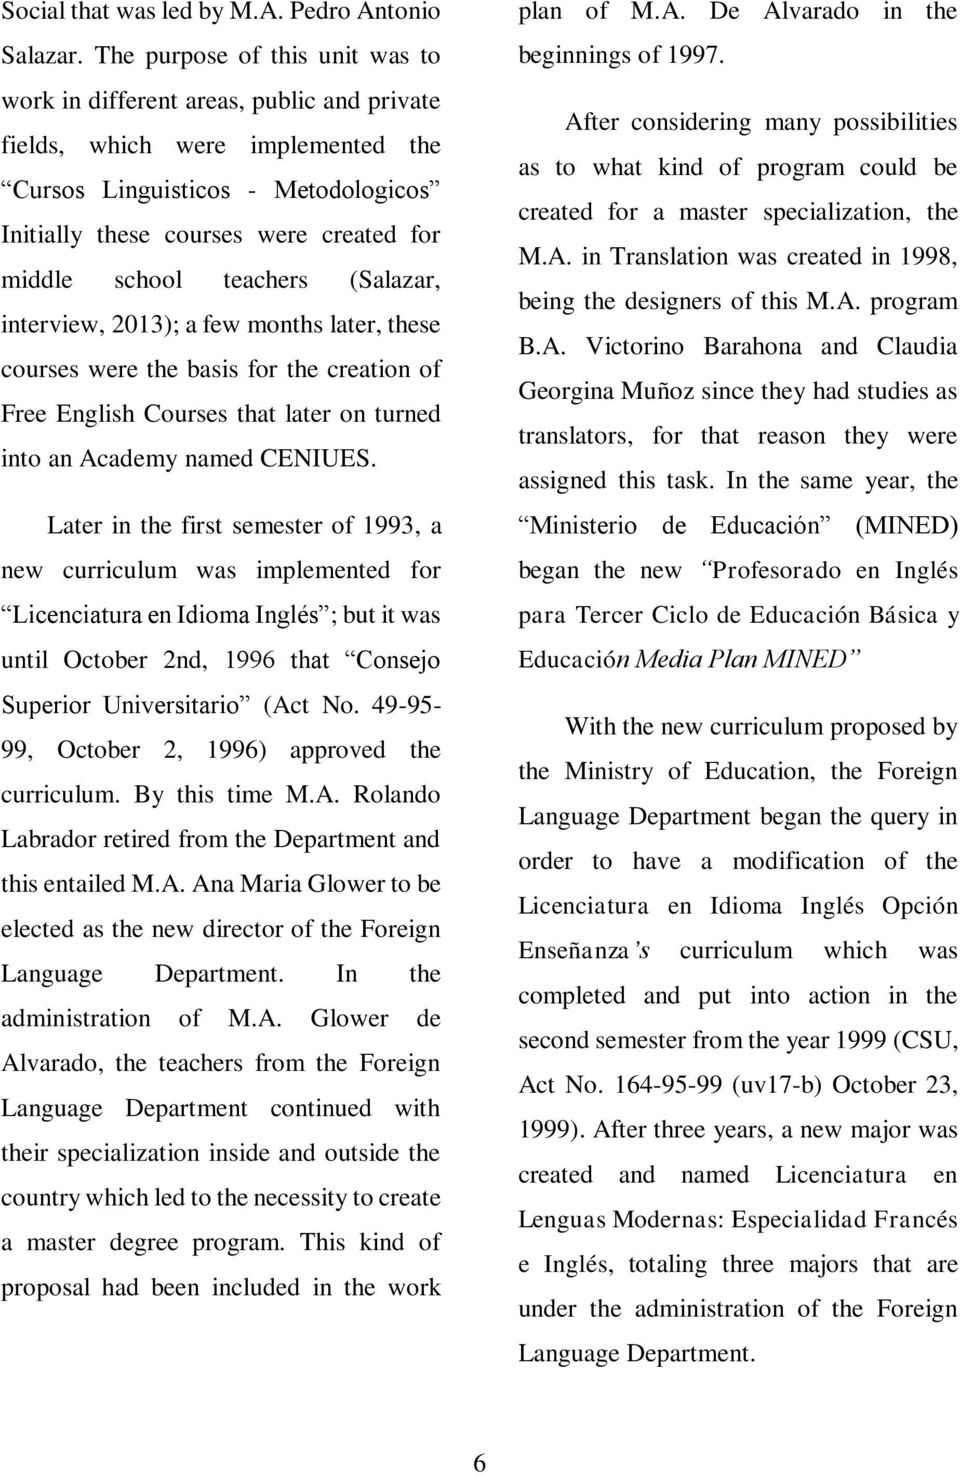 school teachers (Salazar, interview, 2013); a few months later, these courses were the basis for the creation of Free English Courses that later on turned into an Academy named CENIUES.